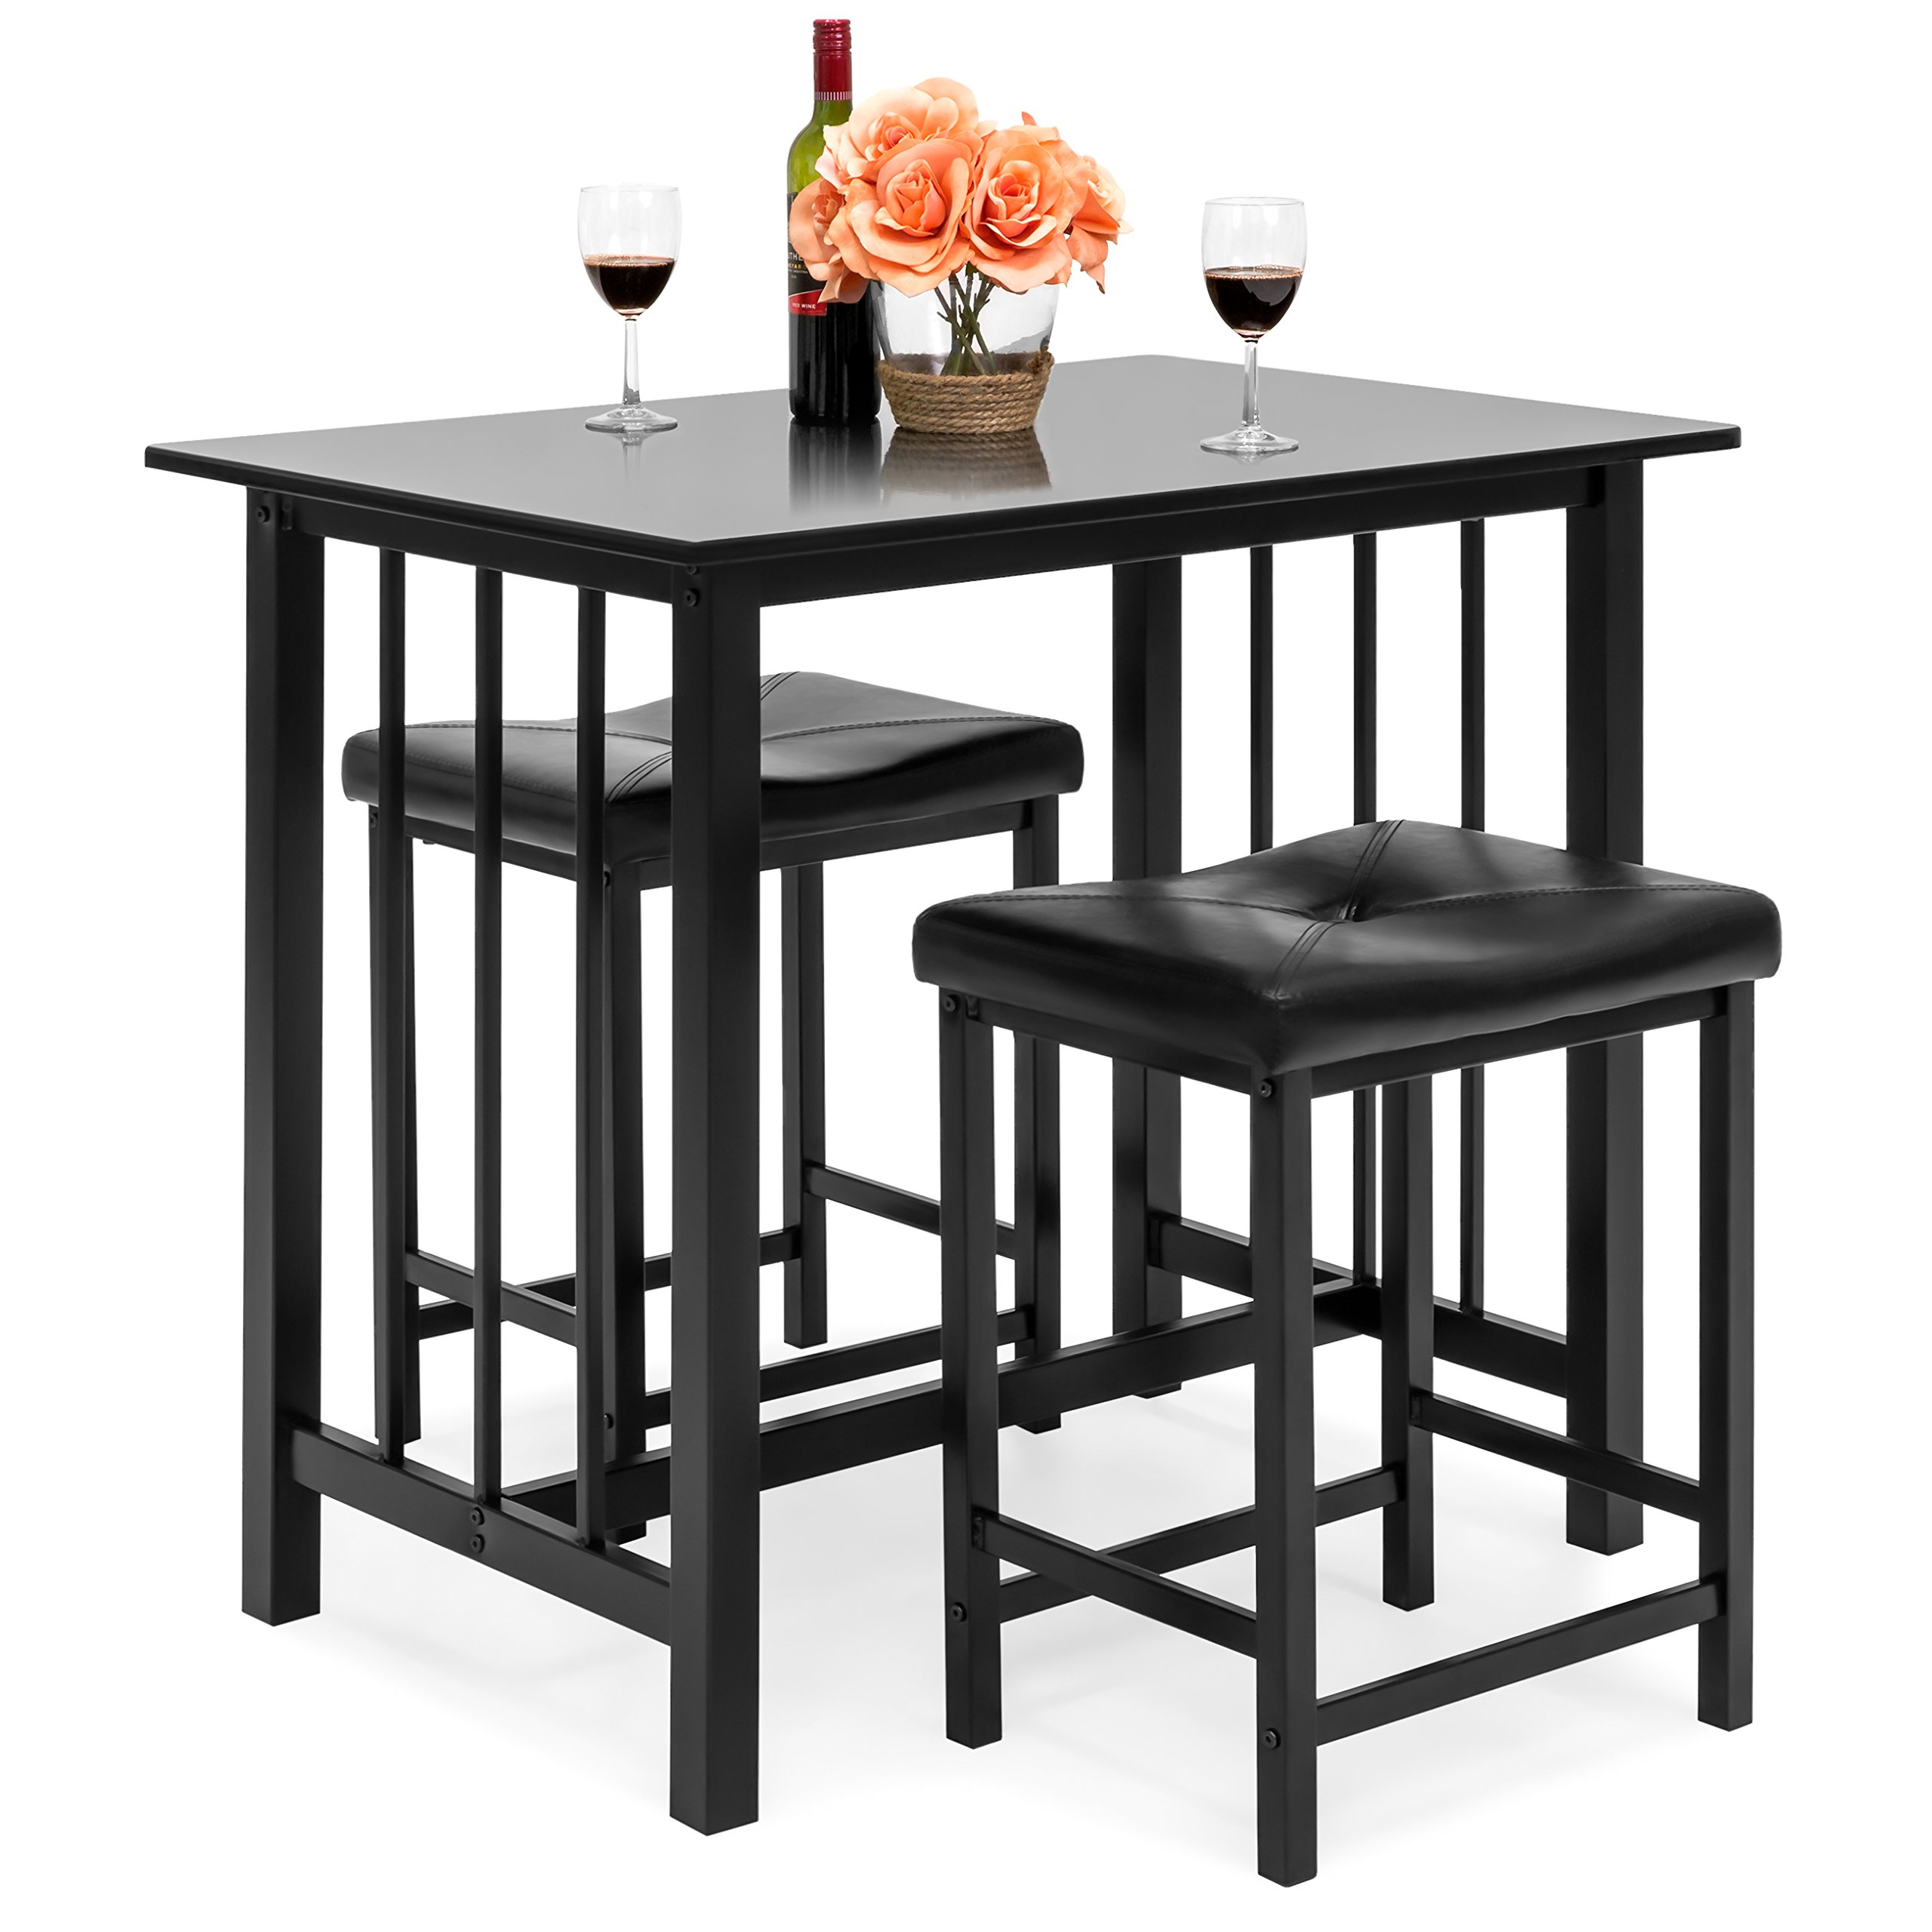 Best Choice Products Counter Height Dining Table Set w/ 2 Faux Leather Stools by Best Choice Products